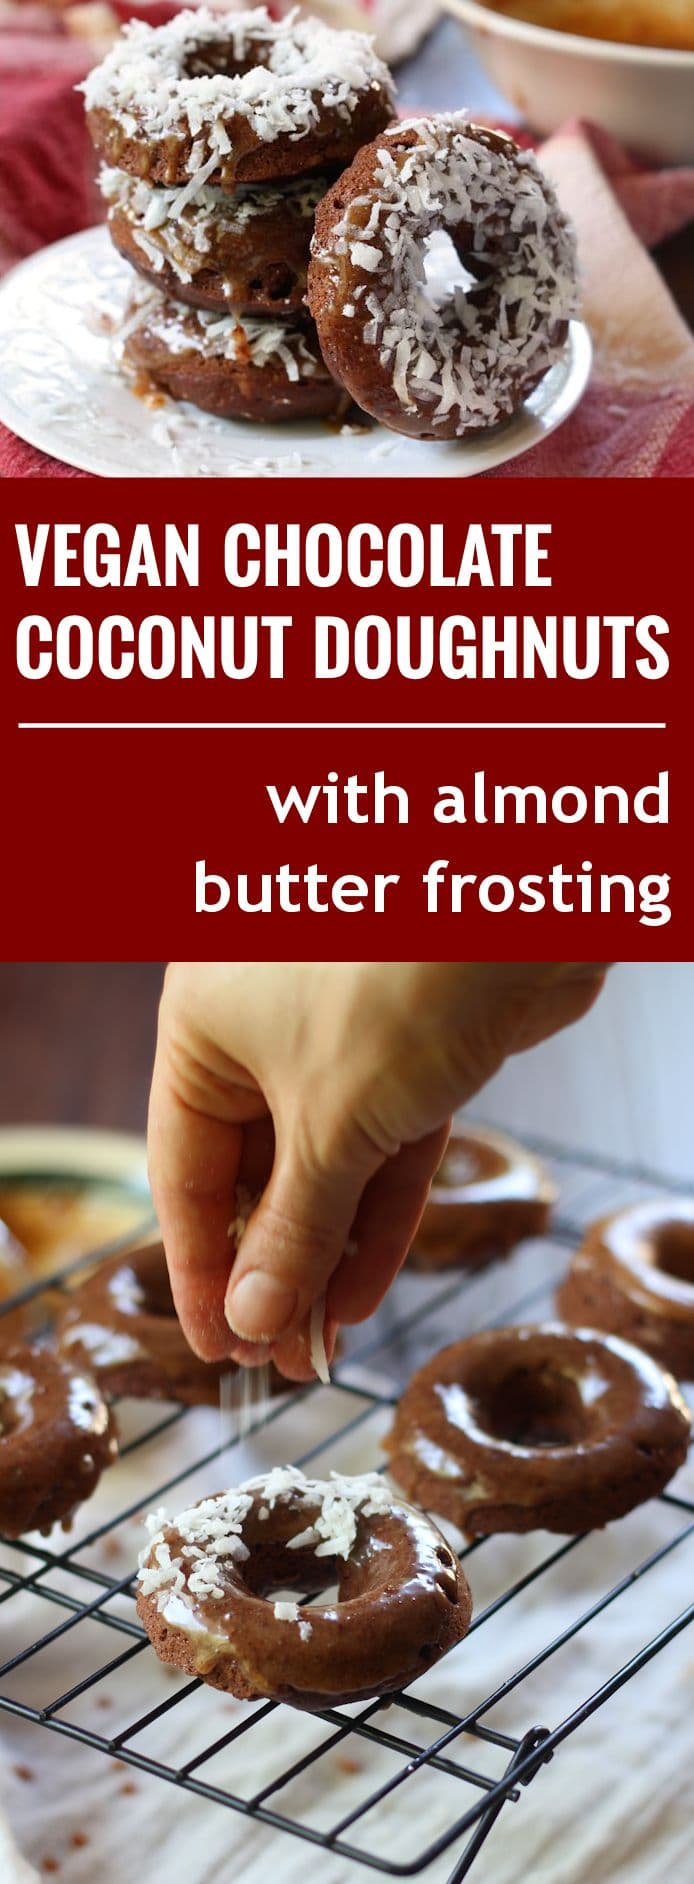 Coconut Almond Butter Frosted Vegan Chocolate Doughnuts